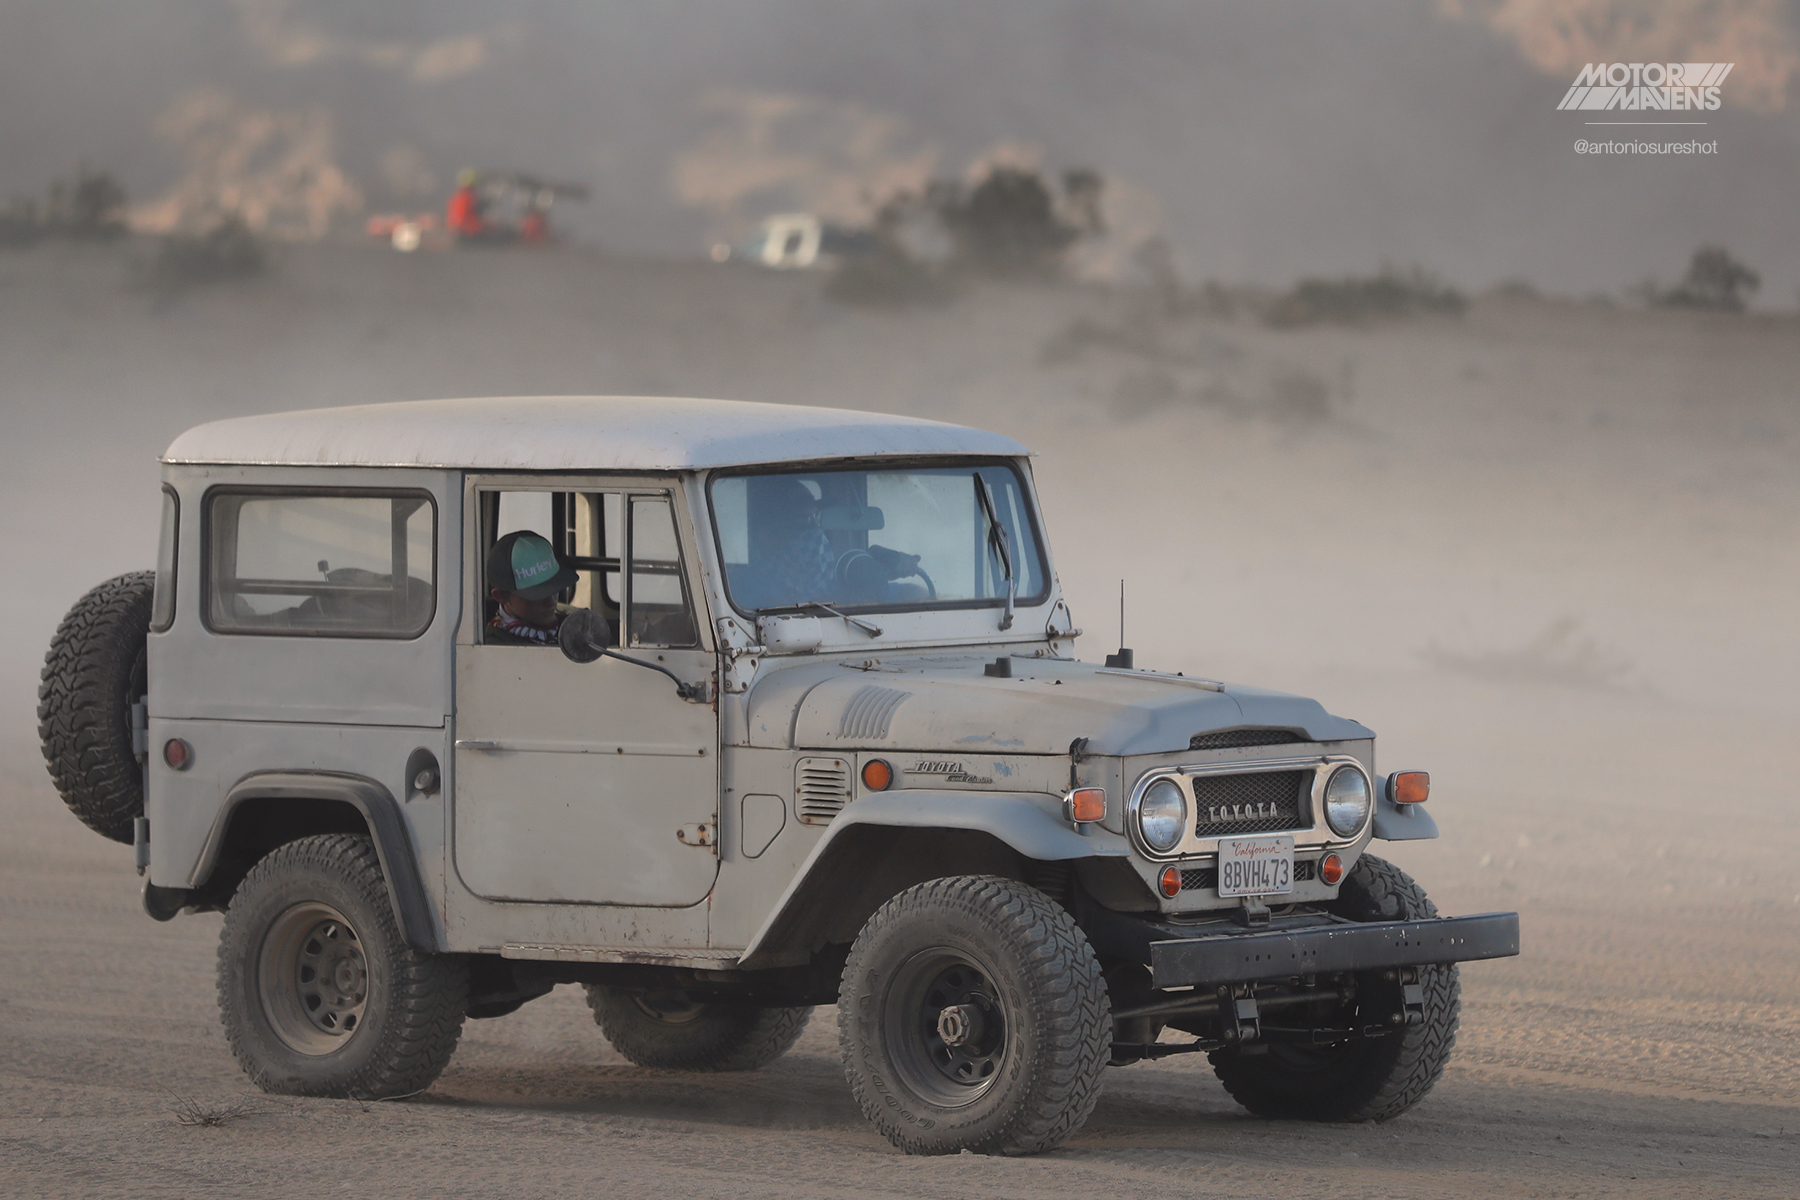 FJ40, King of the Hammers, Toyota Land Cruiser, Land Cruiser